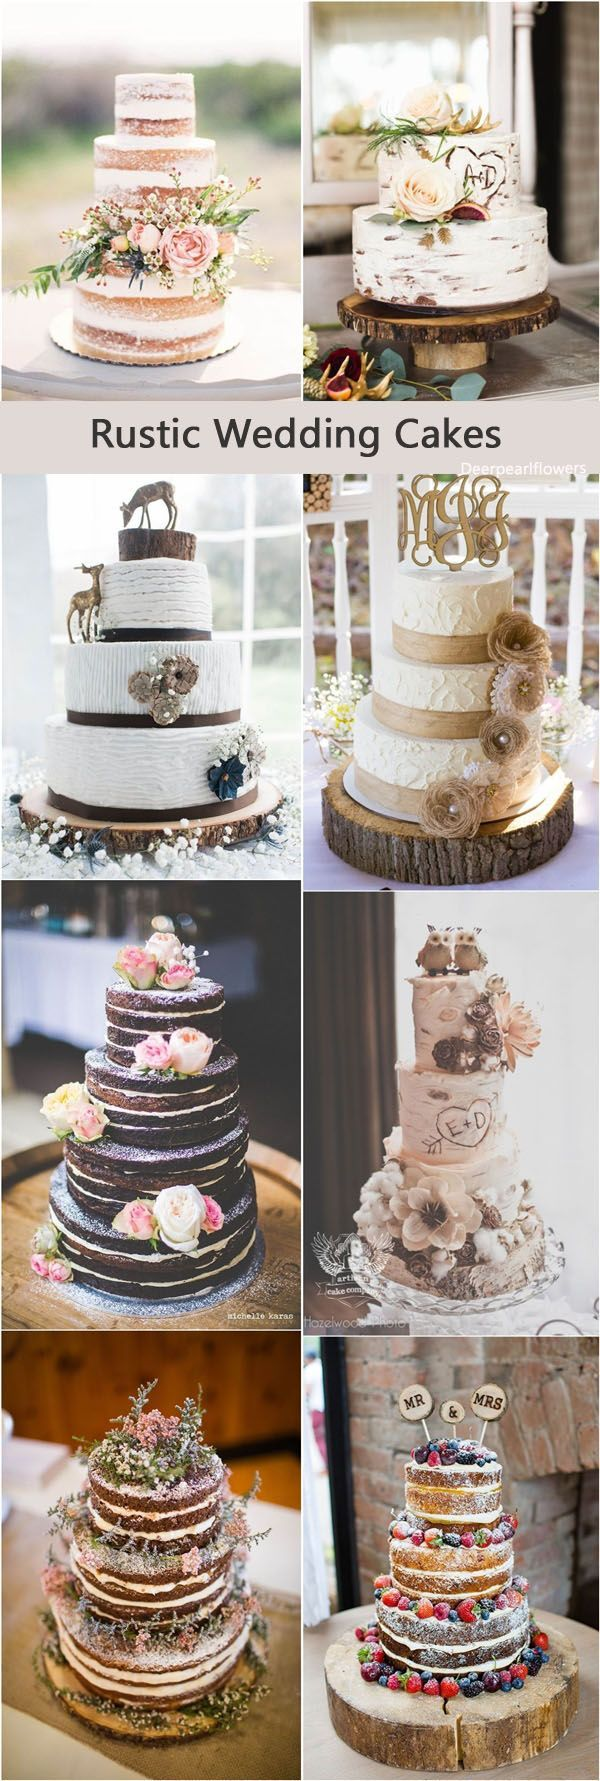 easy rustic wedding ideas that you could try in our